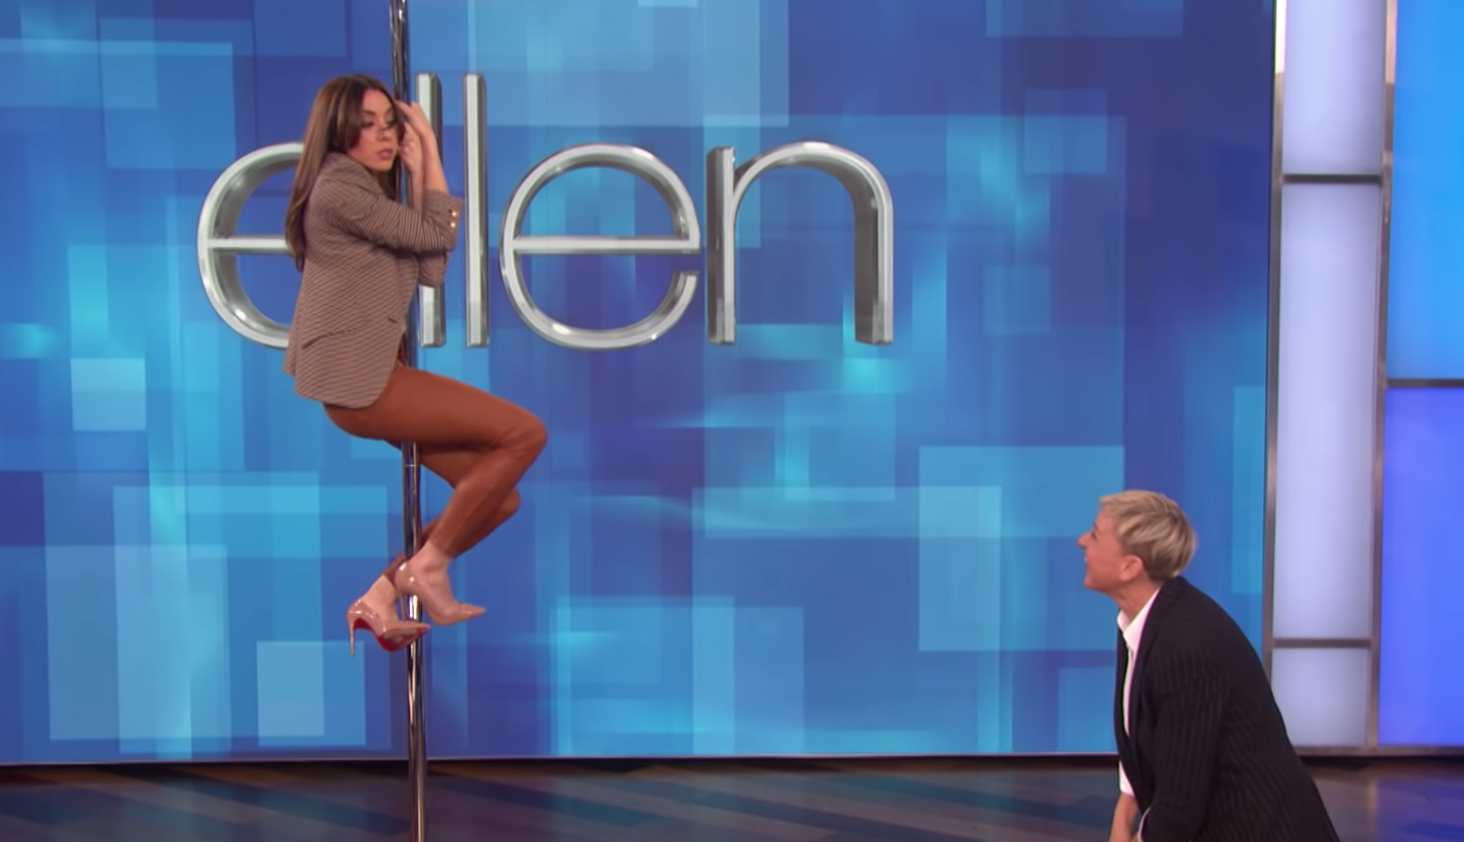 Aubrey Plaza Tries To Channel Jennifer Lopez On A Pole On Ellen DeGeneres's Show And The Result Is, Um, Not Pretty